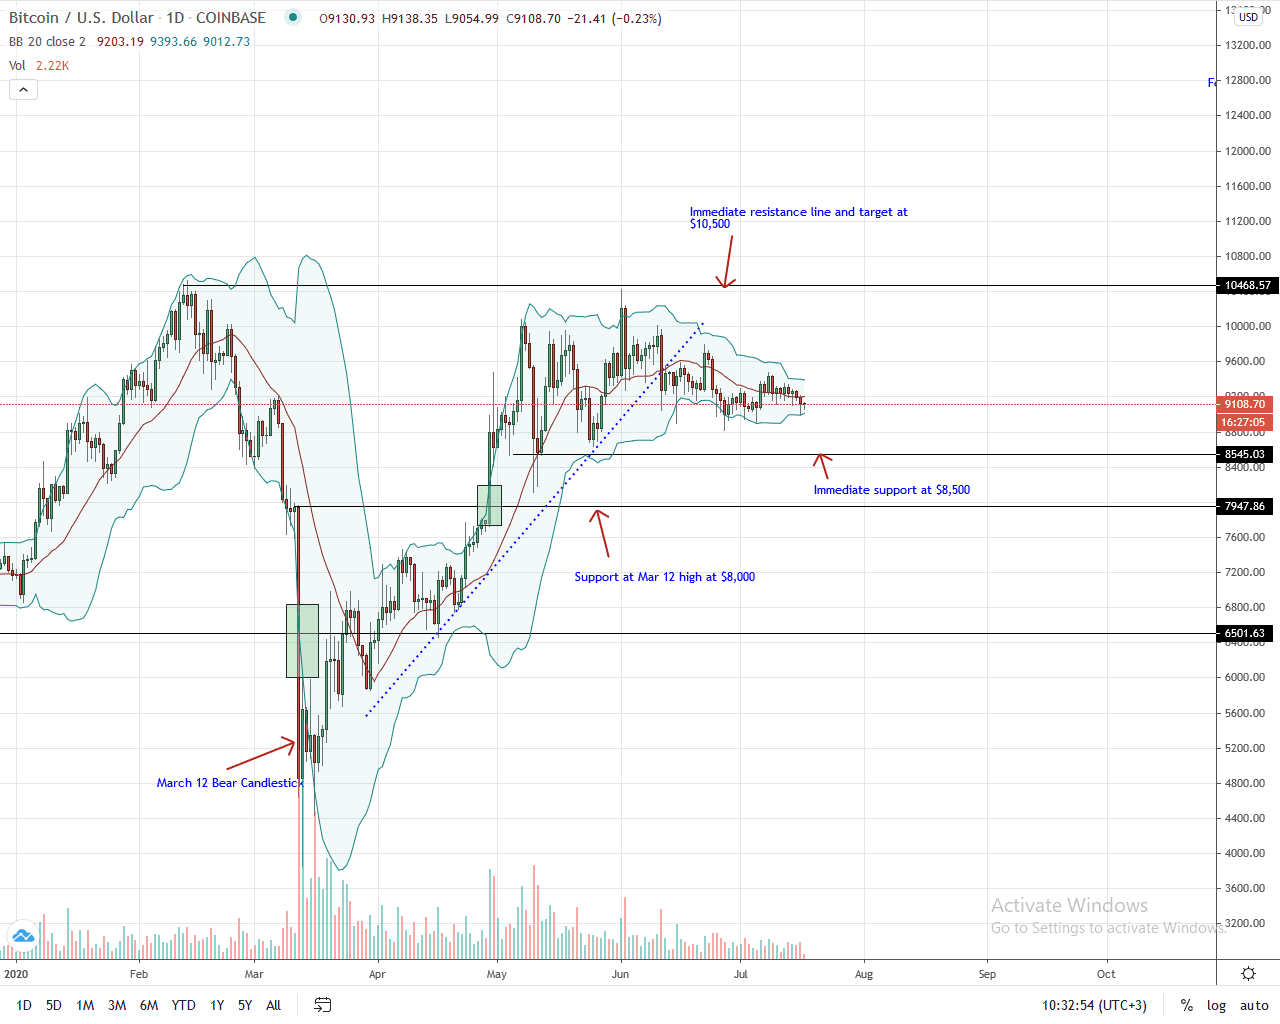 Bitcoin Daily Chart for July 17, 2020